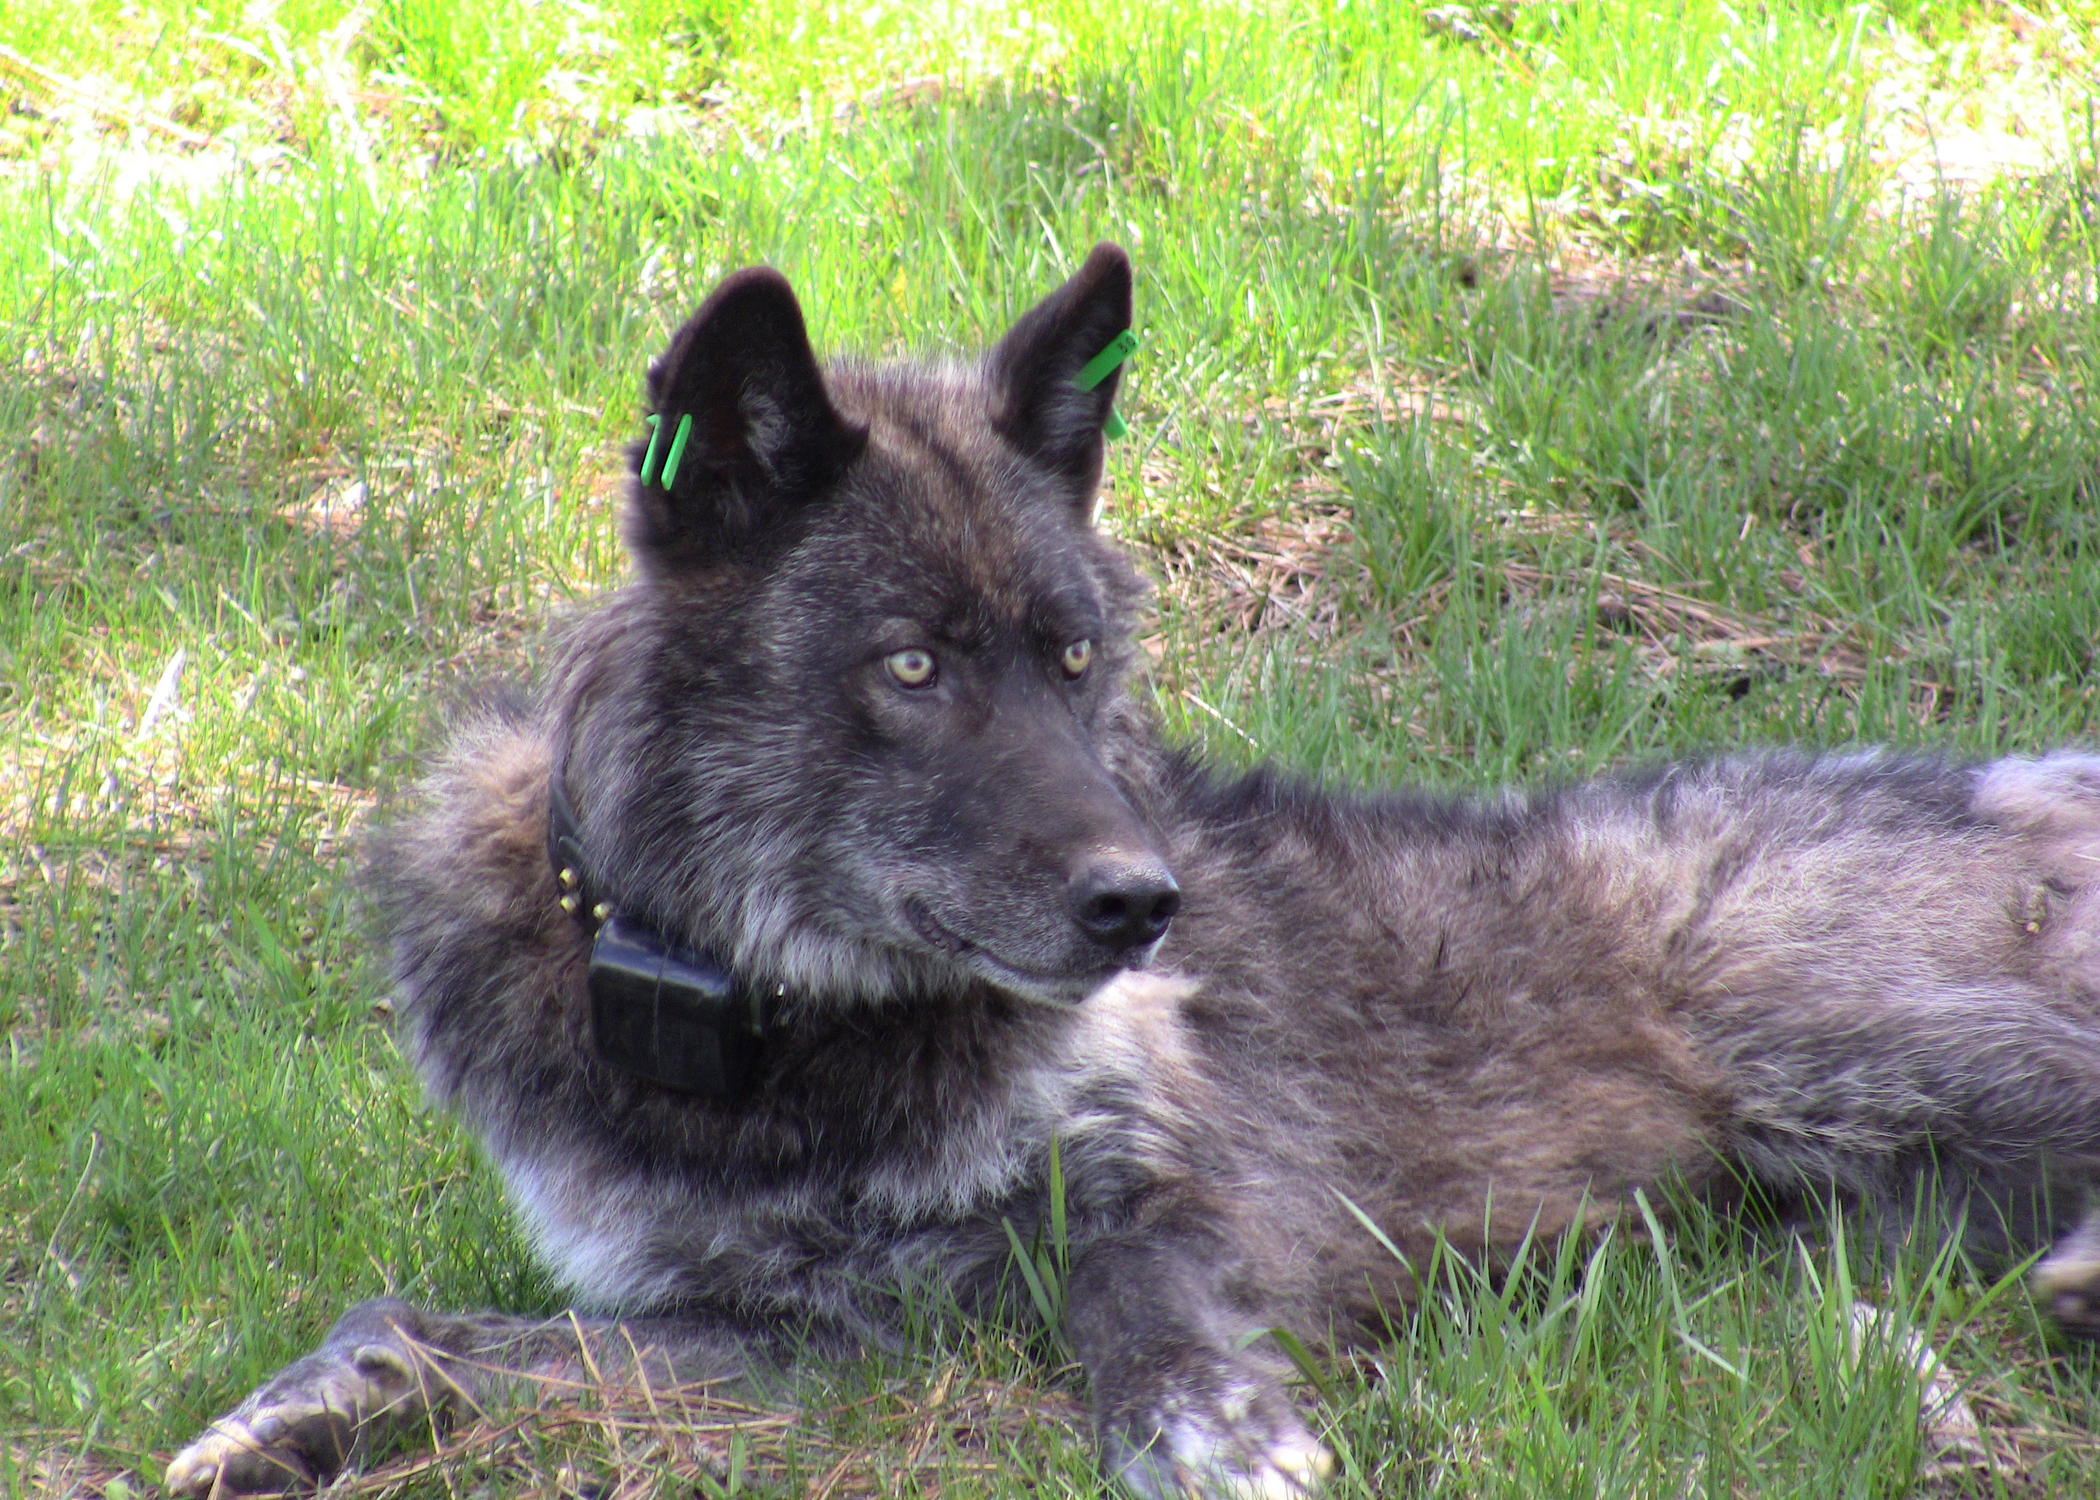 The Imnaha wolf pack's alpha male after being refitted with a working GPS collar on May 19, 2011. Photo courtesy of ODFW. More information. Download high resolution image.